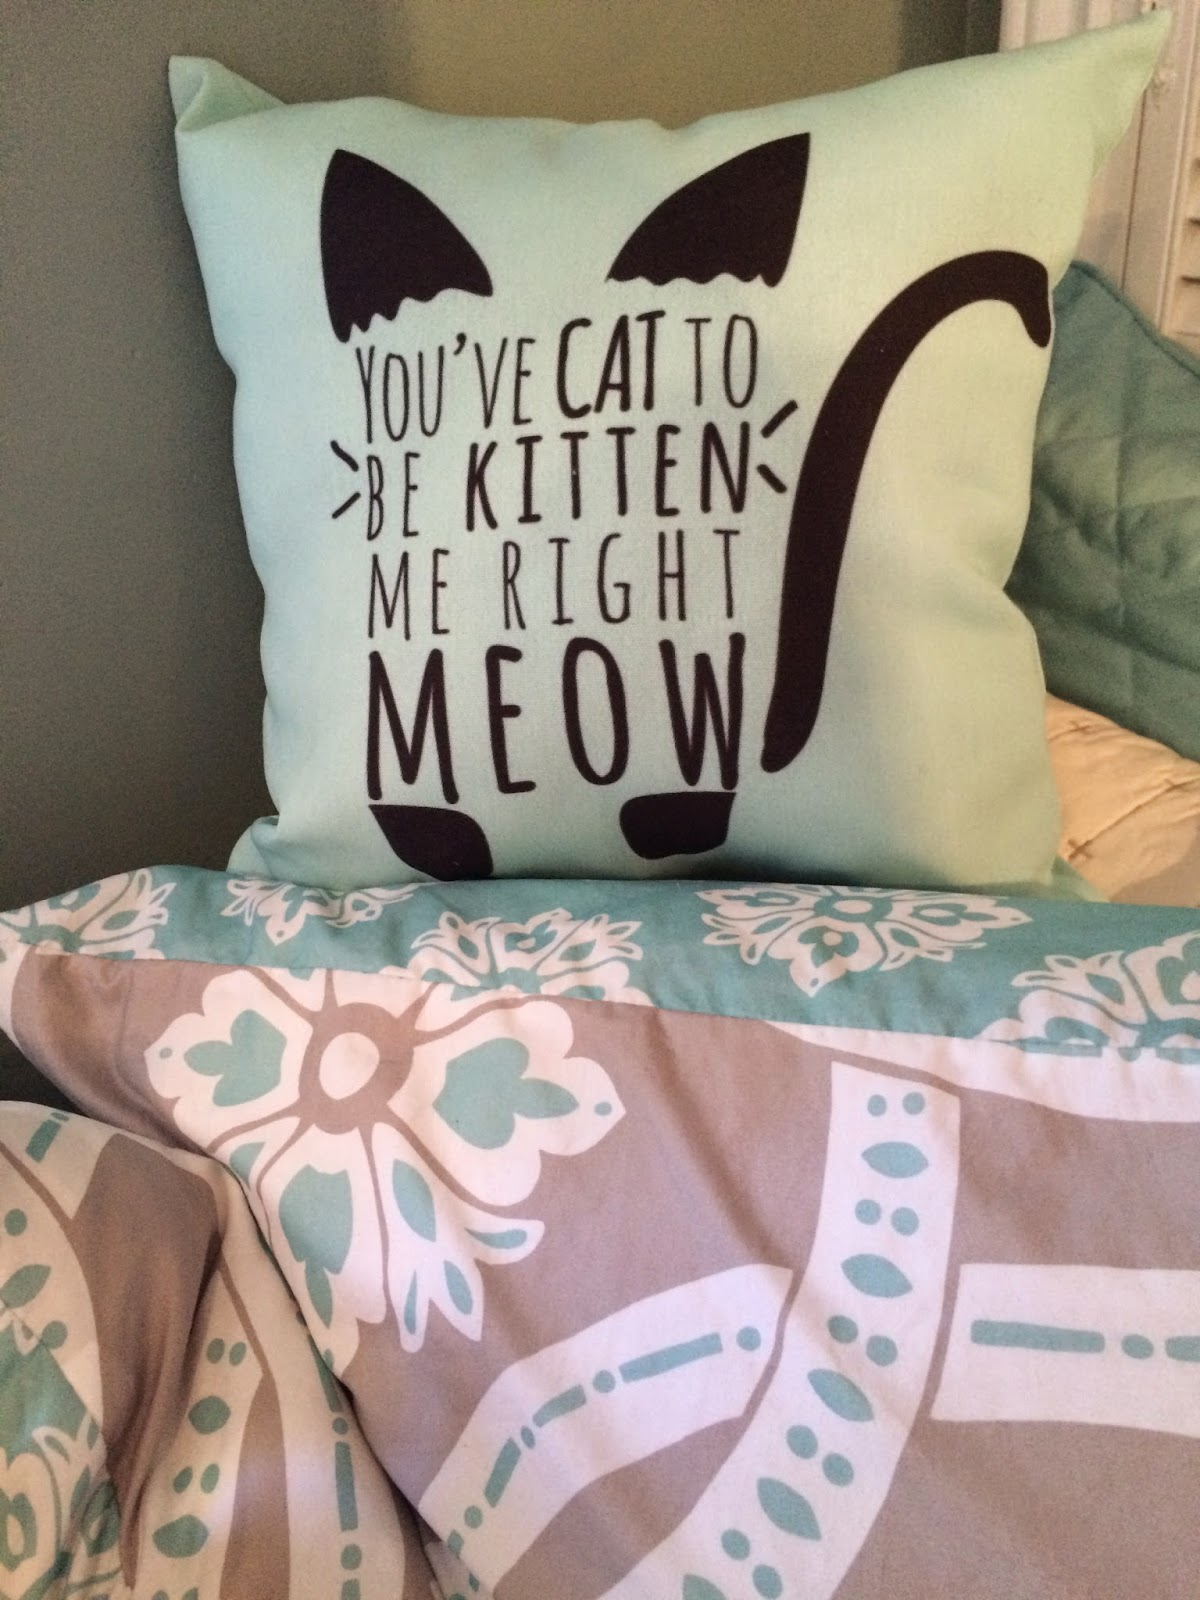 Kitten Me right Meow Pillow